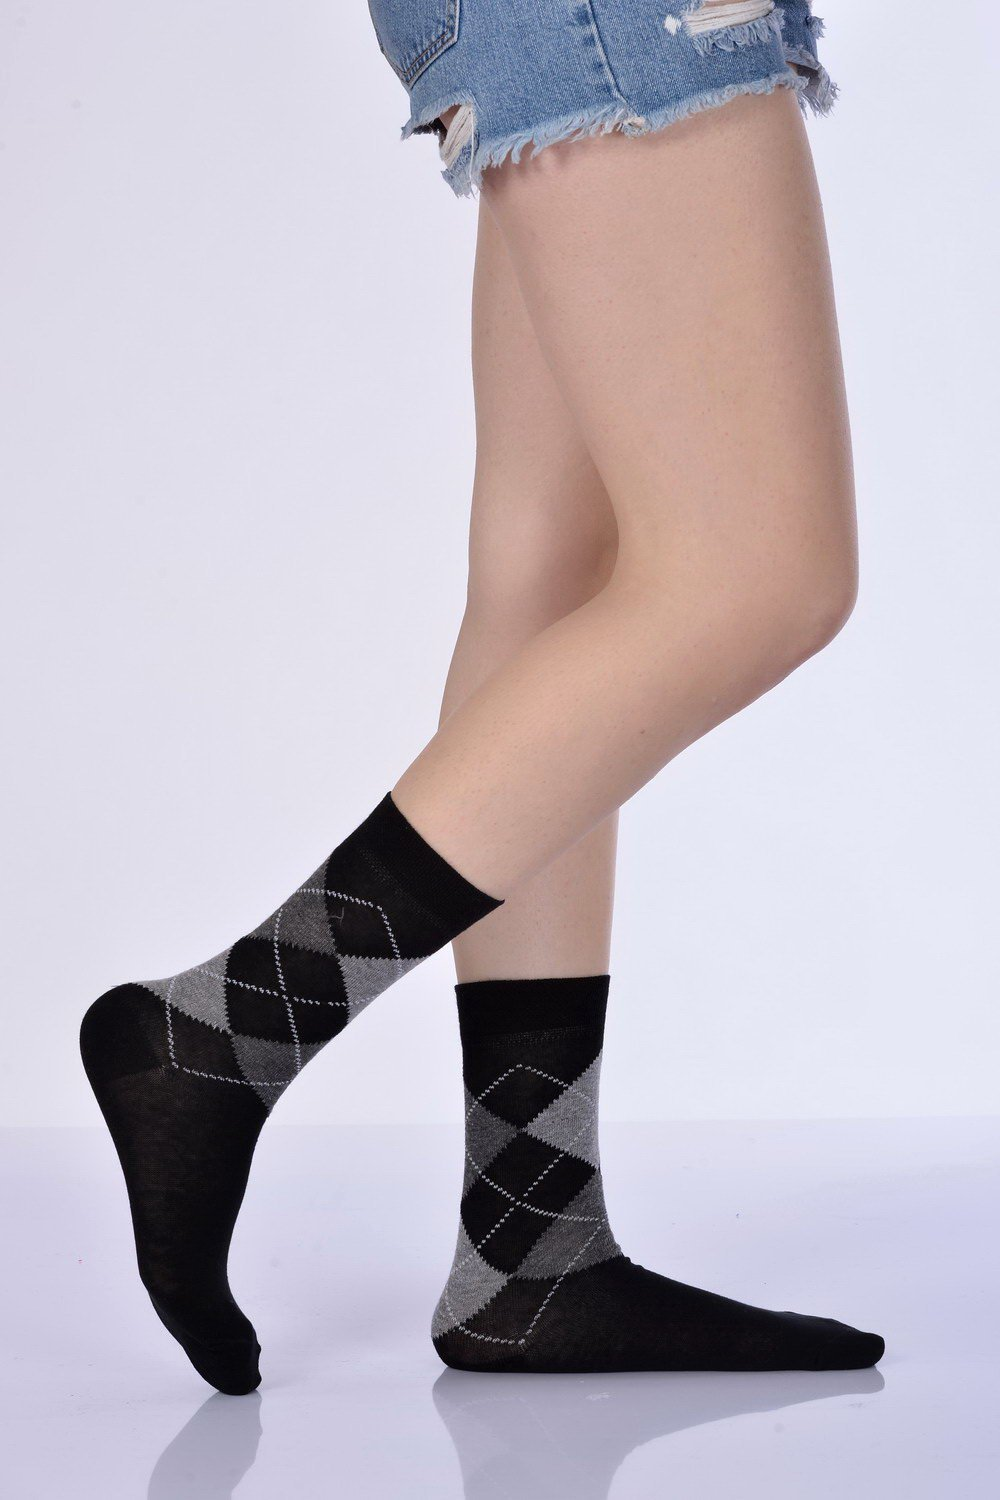 Women's Plaid Pattern Black Socket Socks- 3 Pairs